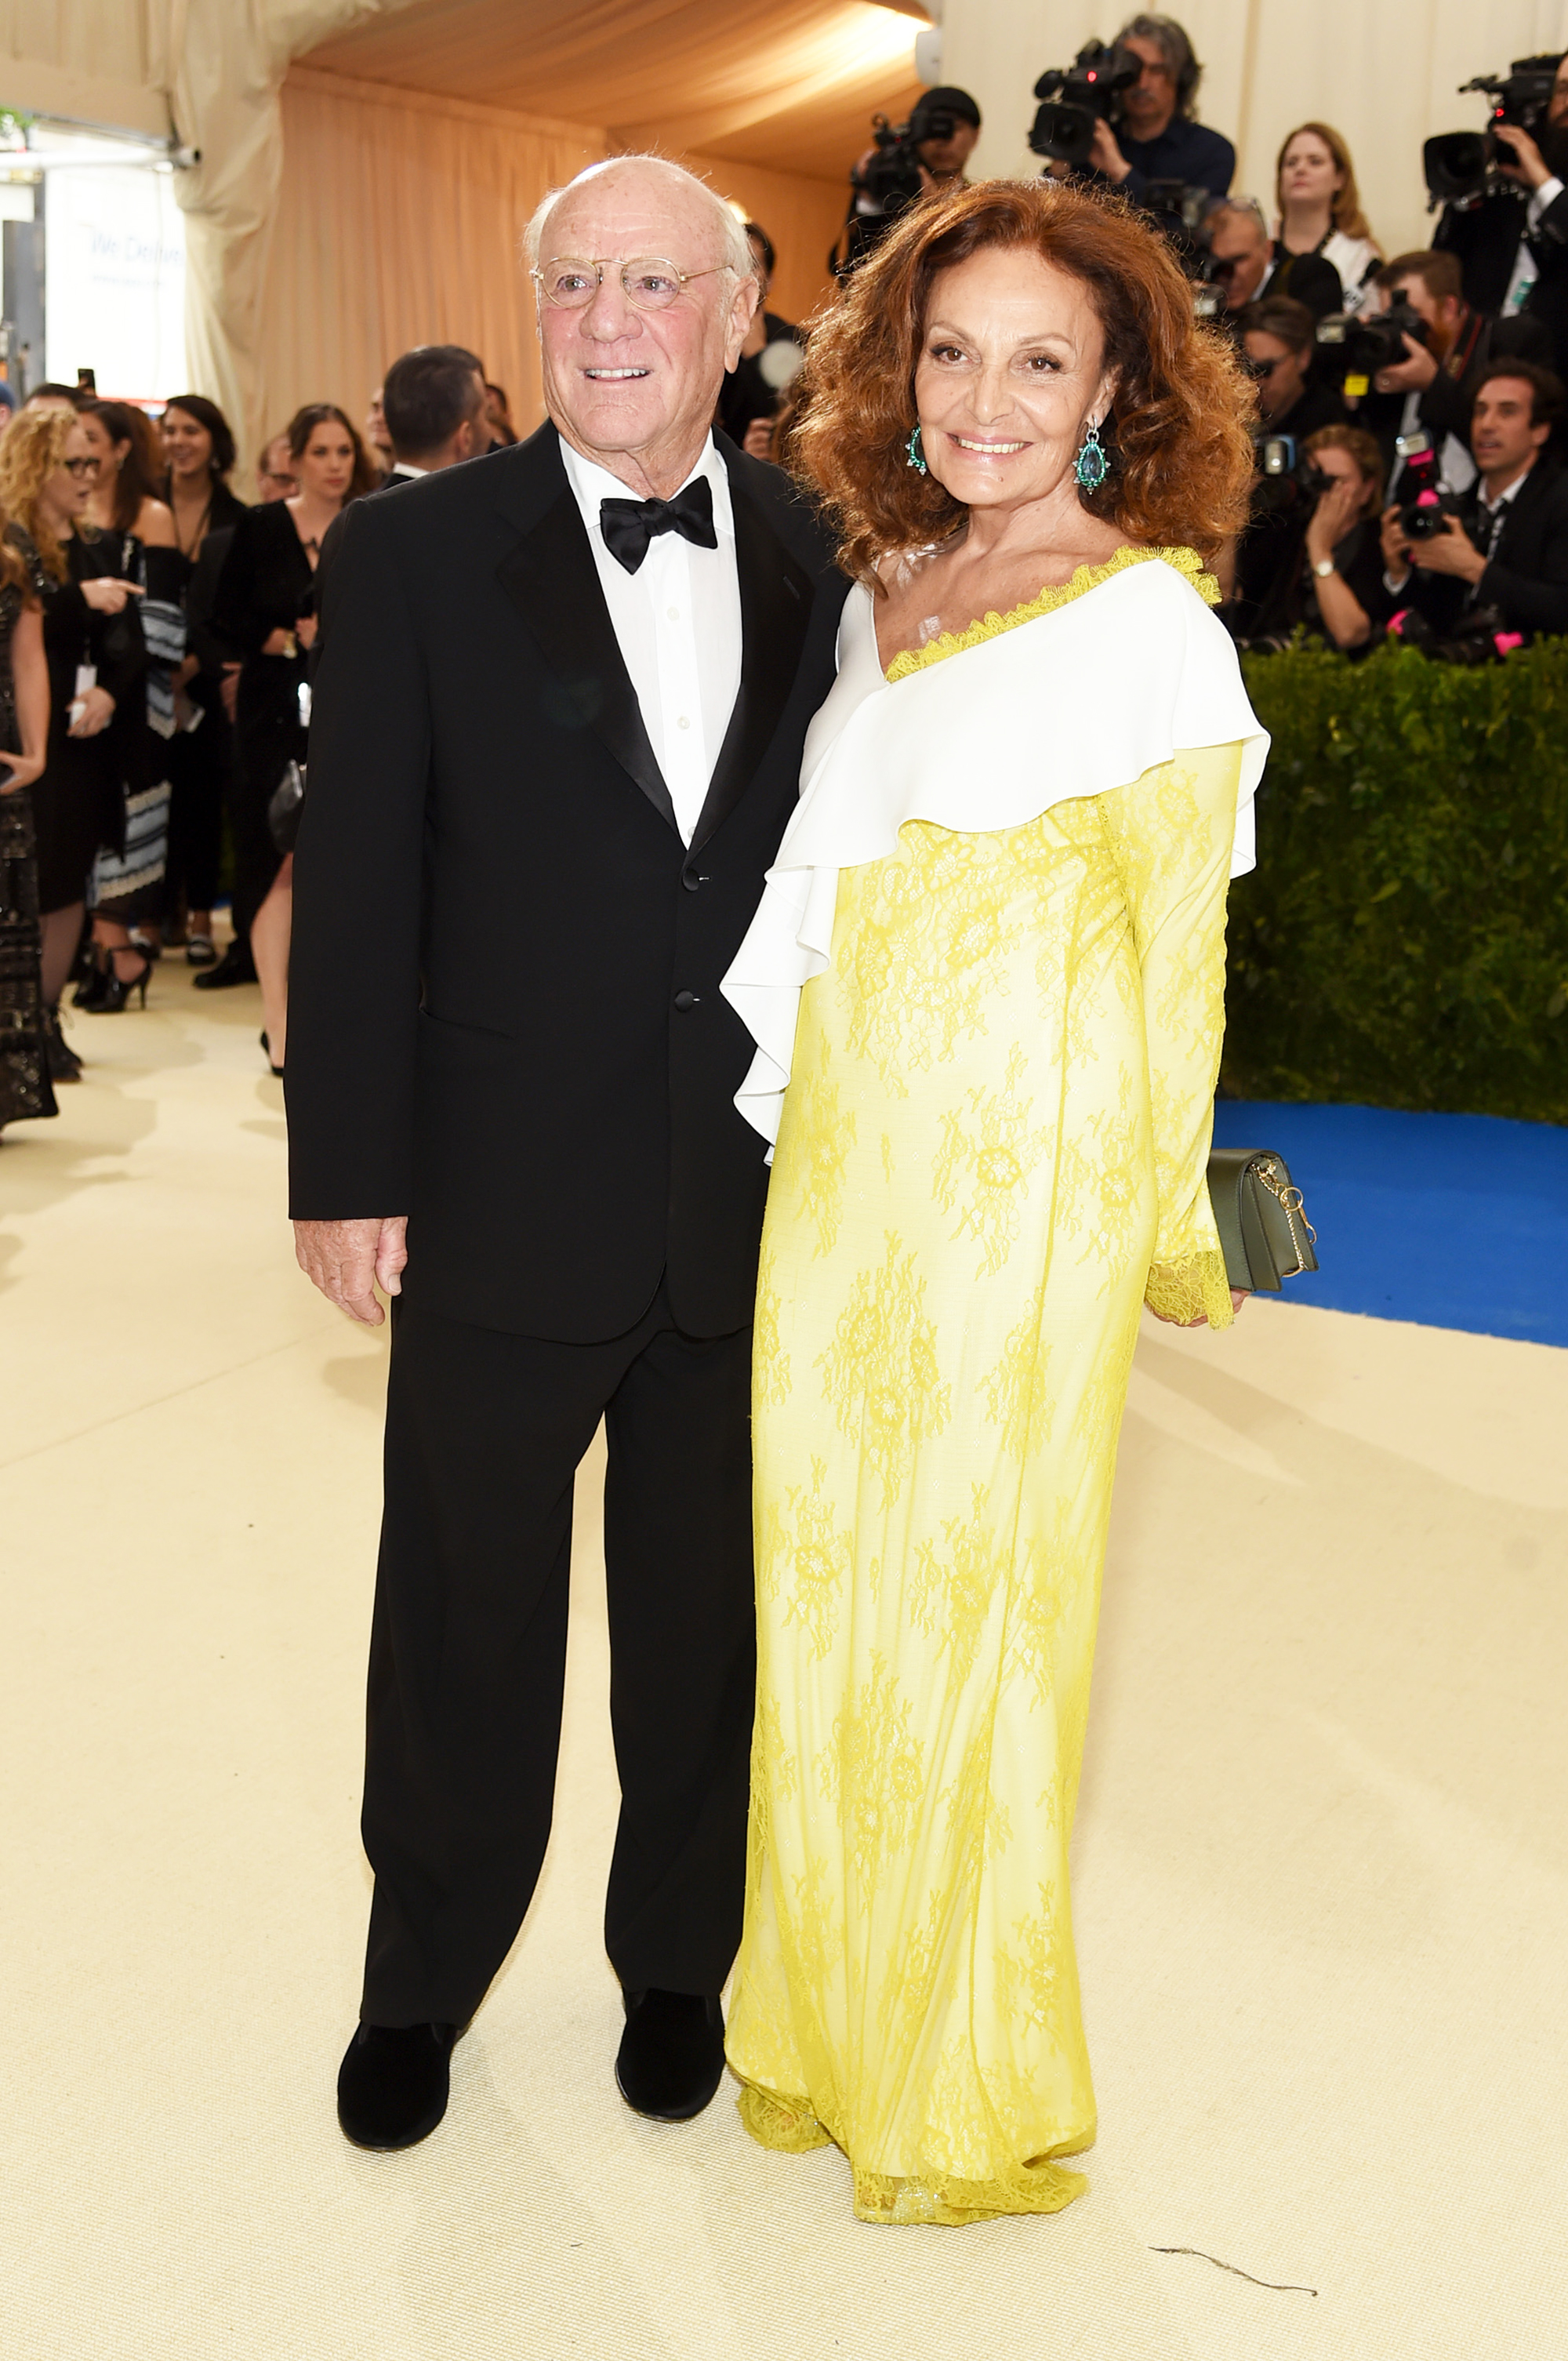 Barry Diller and Diane von Furstenberg attend The Metropolitan Museum of Art's Costume Institute benefit gala celebrating the opening of the Rei Kawakubo/Comme des Garçons: Art of the In-Between exhibition in New York City, on May 1, 2017.